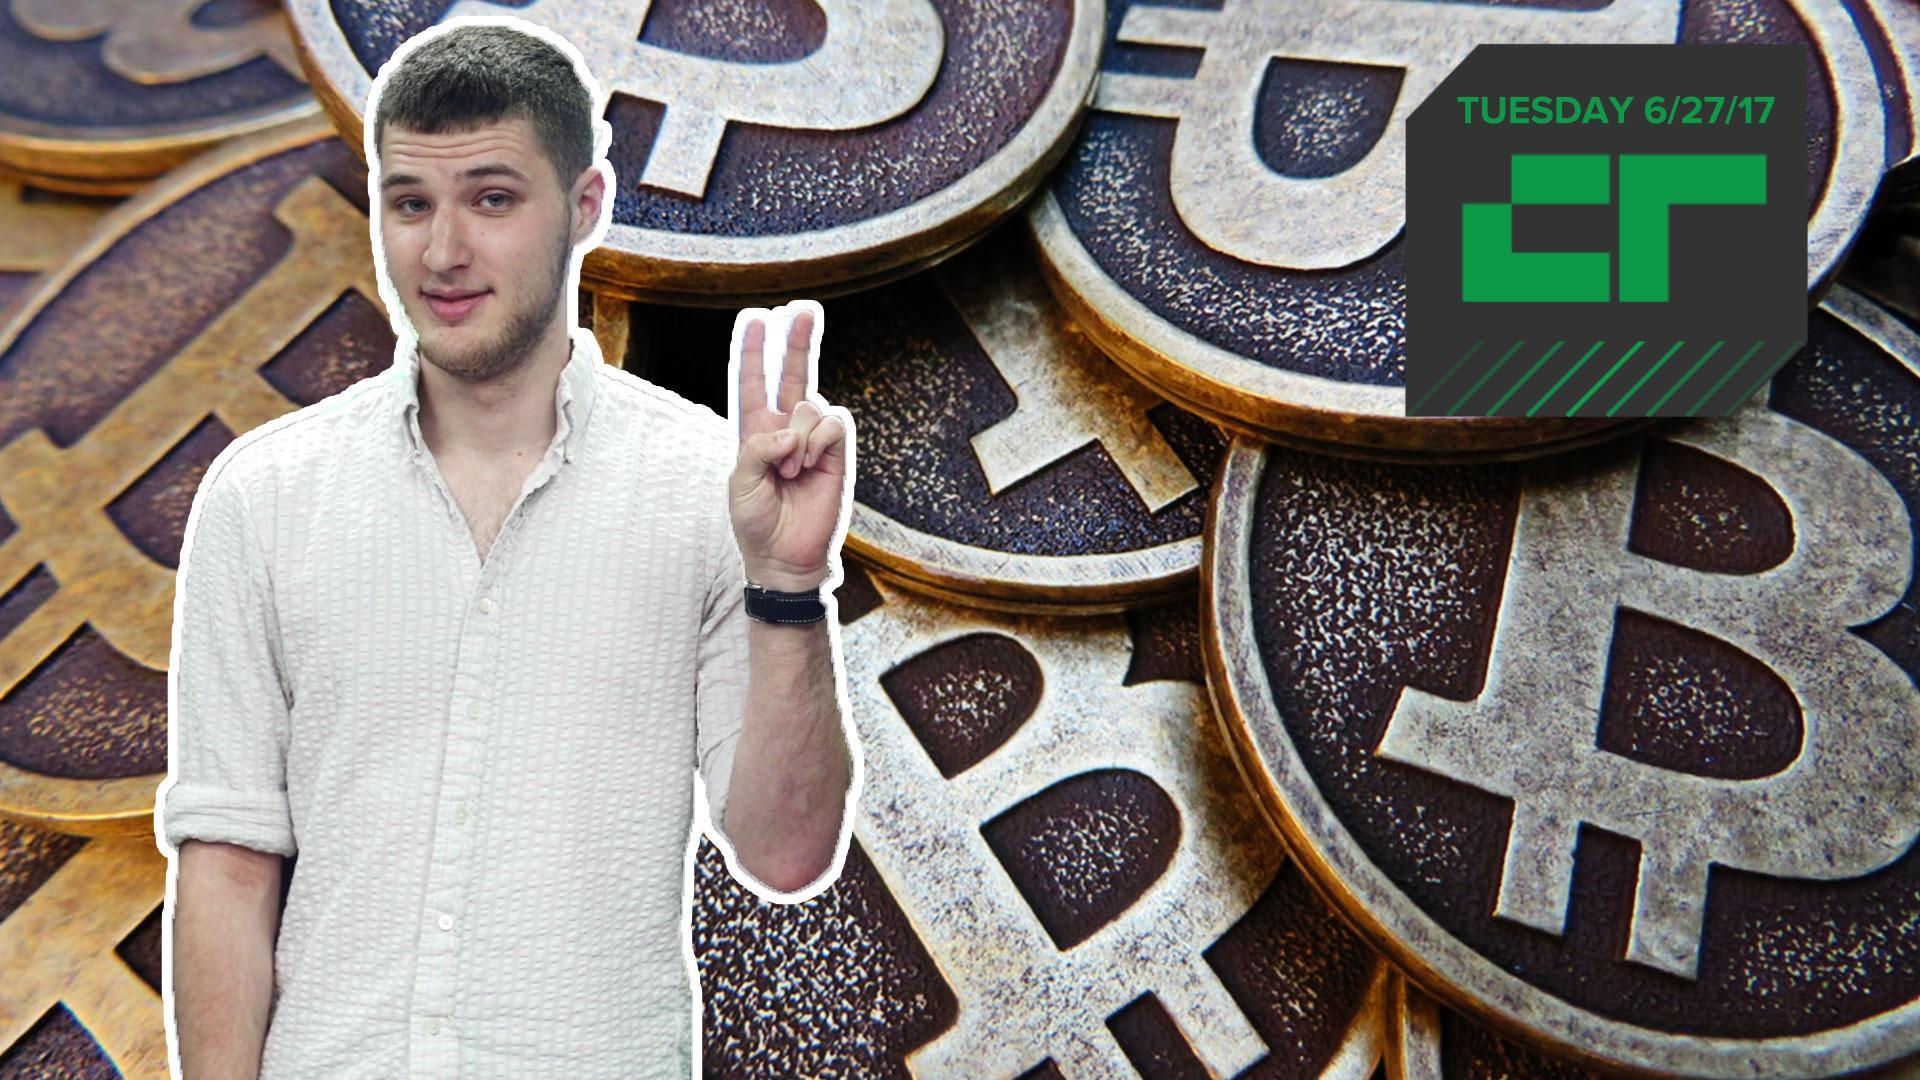 Crunch Report | A bad day for cybersecurity